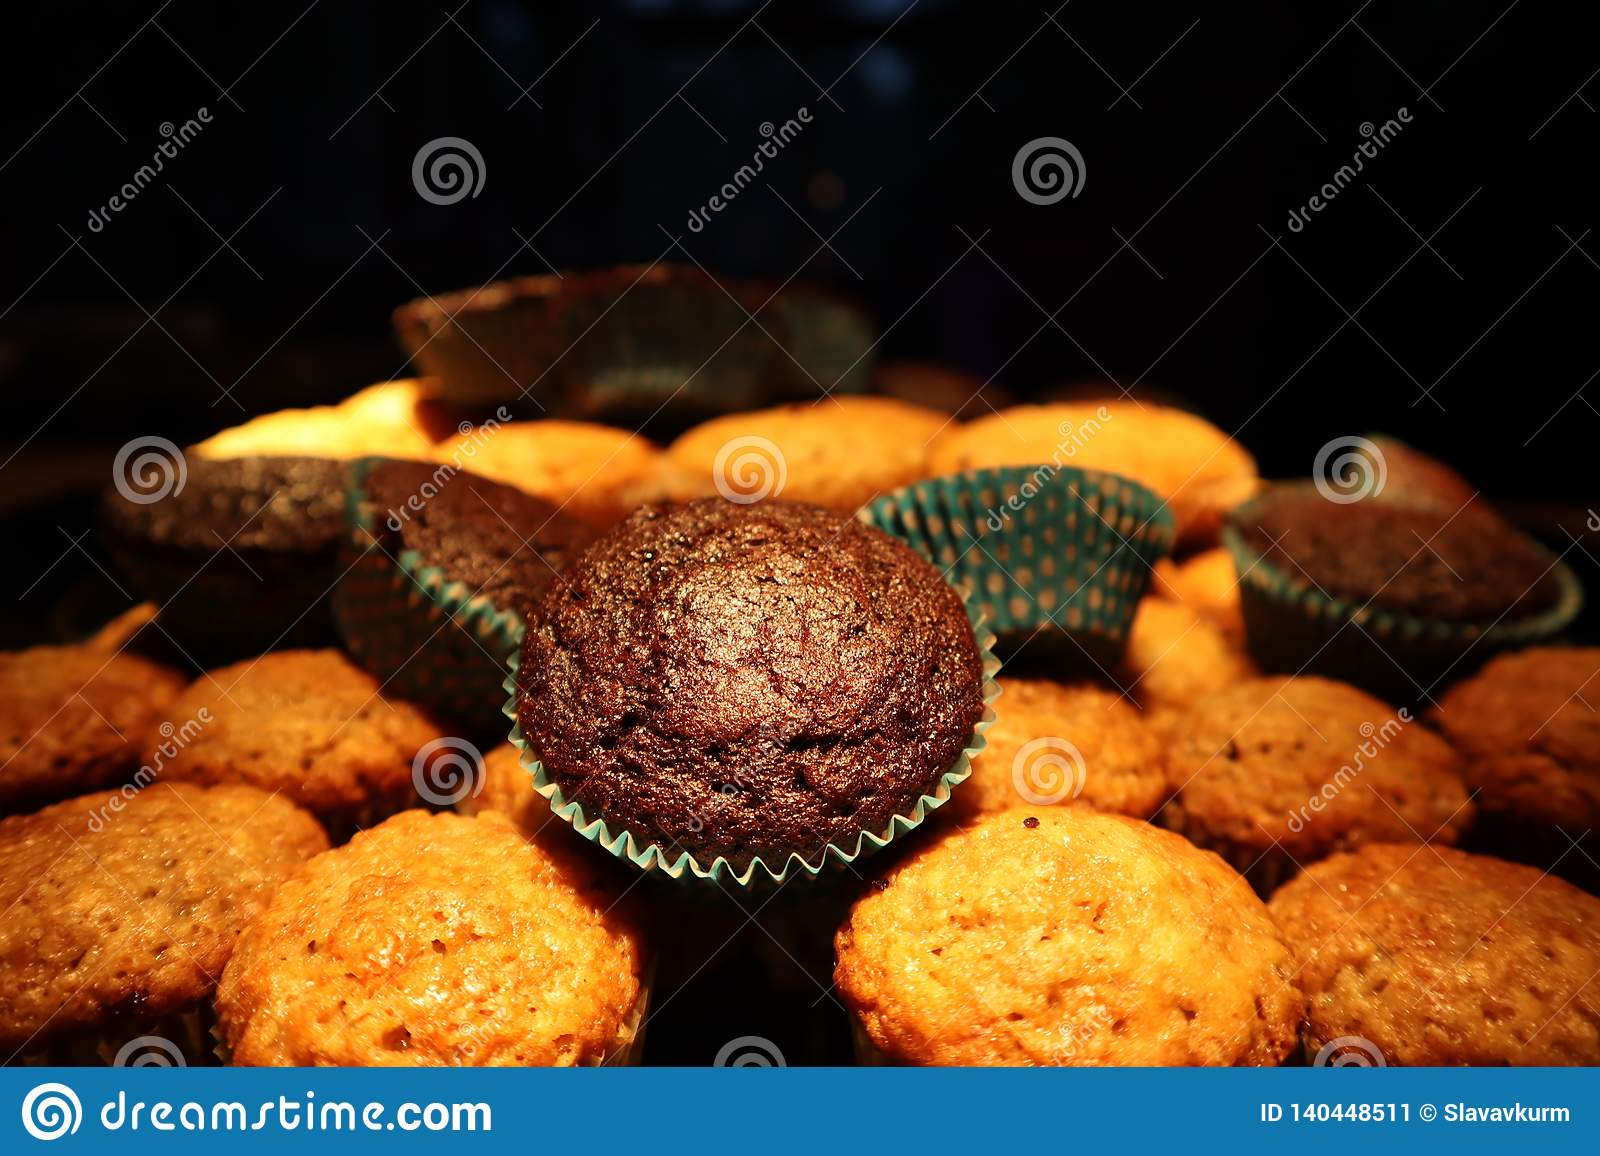 Muffins with chocolate and nuts. in the background a cook in an apron